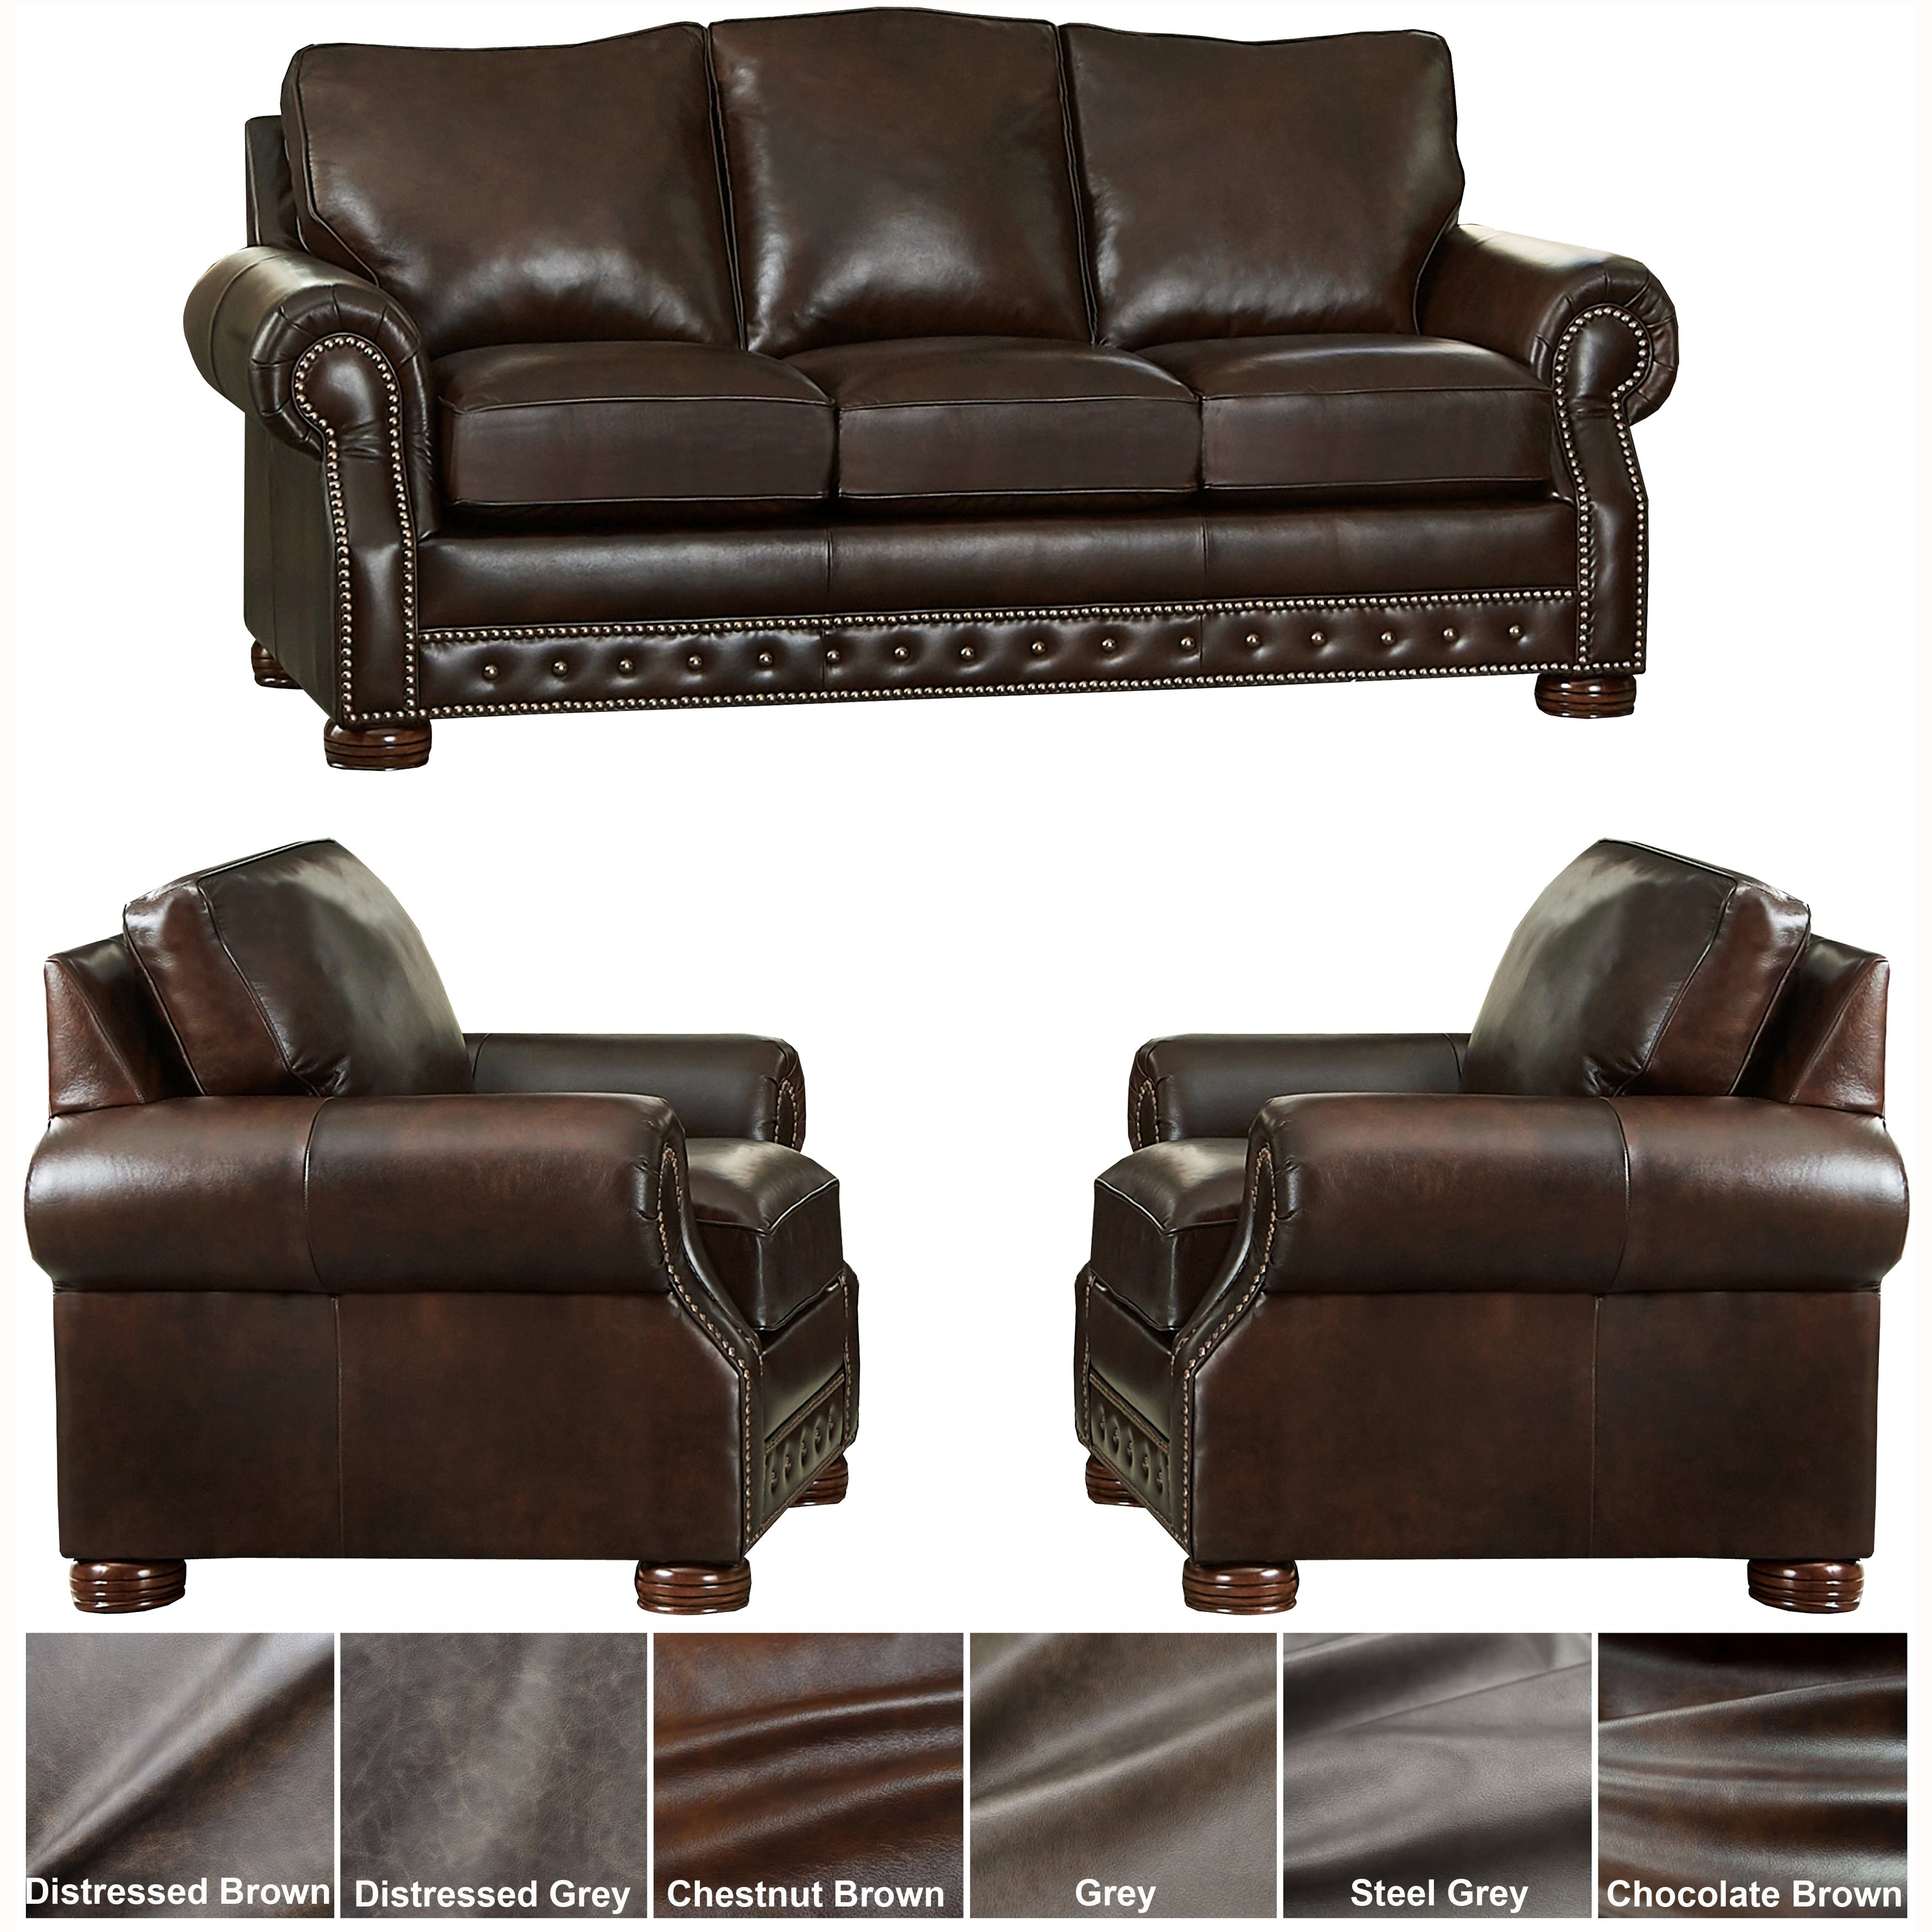 Made in USA Porto Top Grain Leather Sofa and Two Chairs